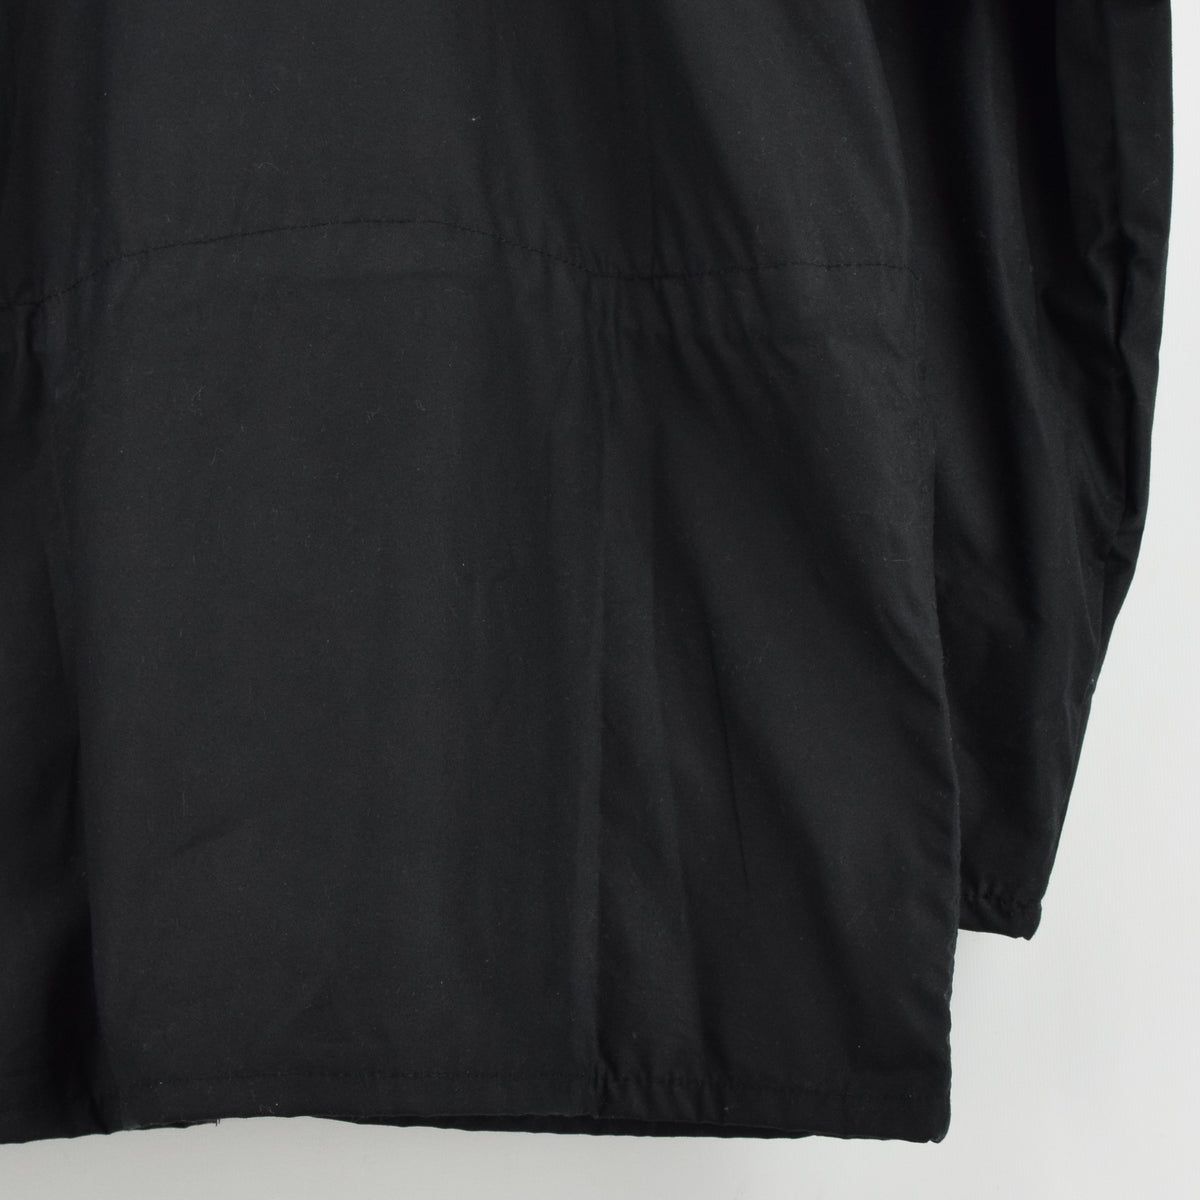 Filson Cover Cloth Mile Marker Coat Black Wax Cotton Jacket Made in USA M back hem